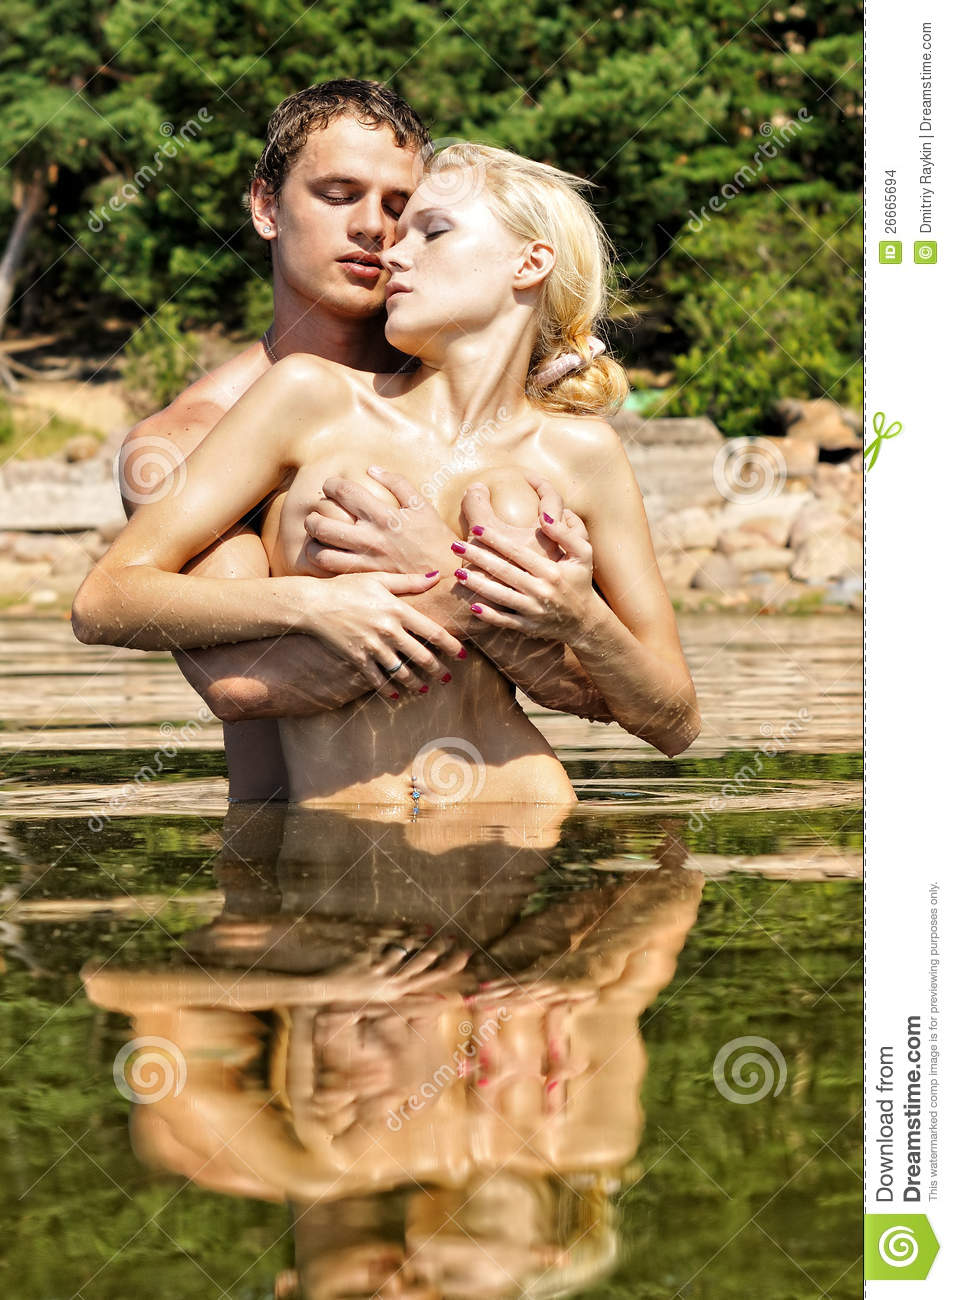 Babe emma couple eroctic naturalist nudist photography